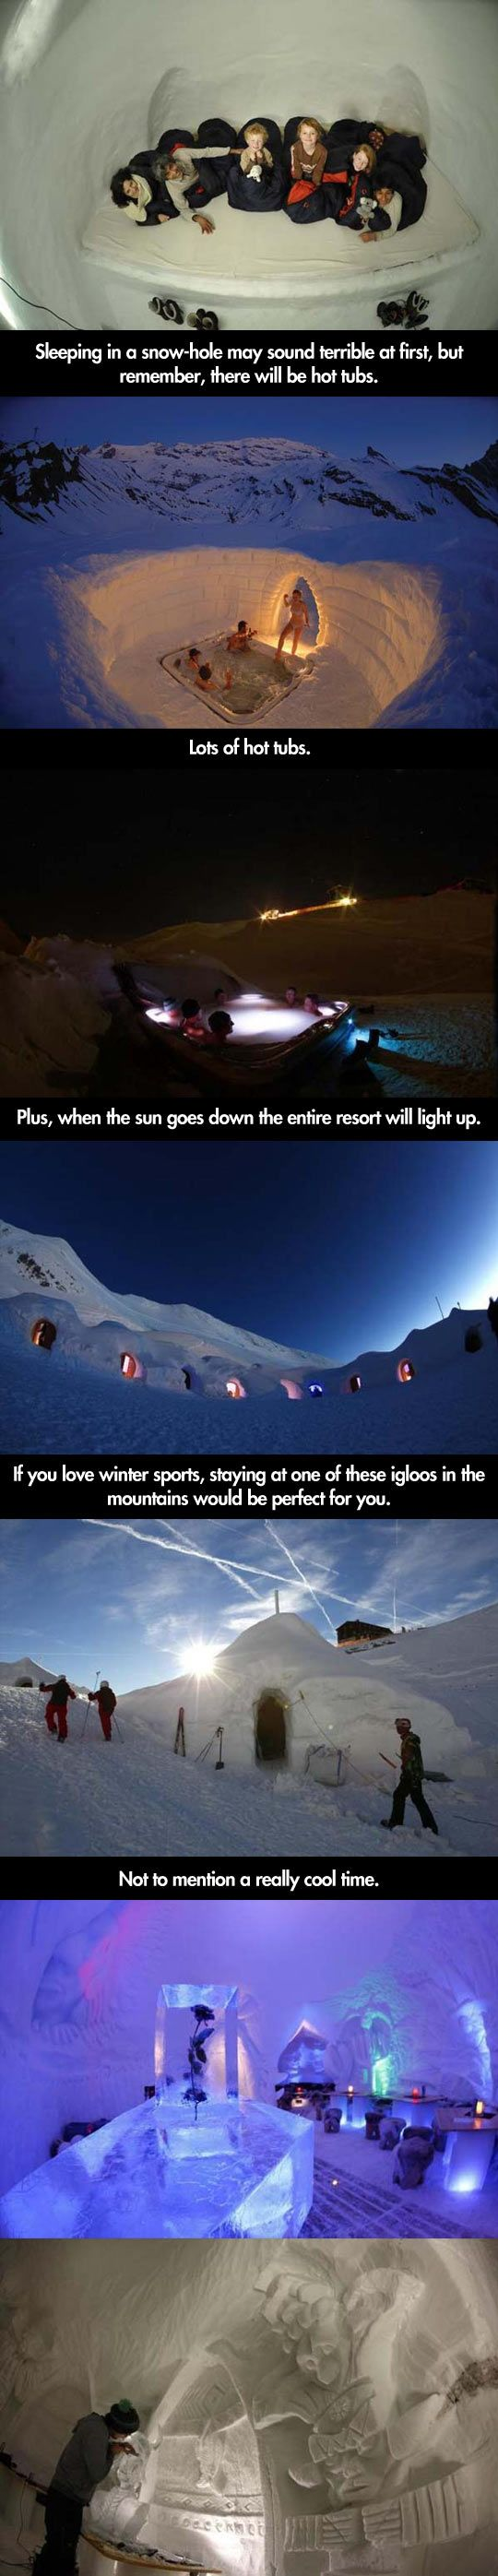 These people know how to do winter right // funny pictures - funny photos - funny images - funny pics - funny quotes - #lol #humor #funnypictures